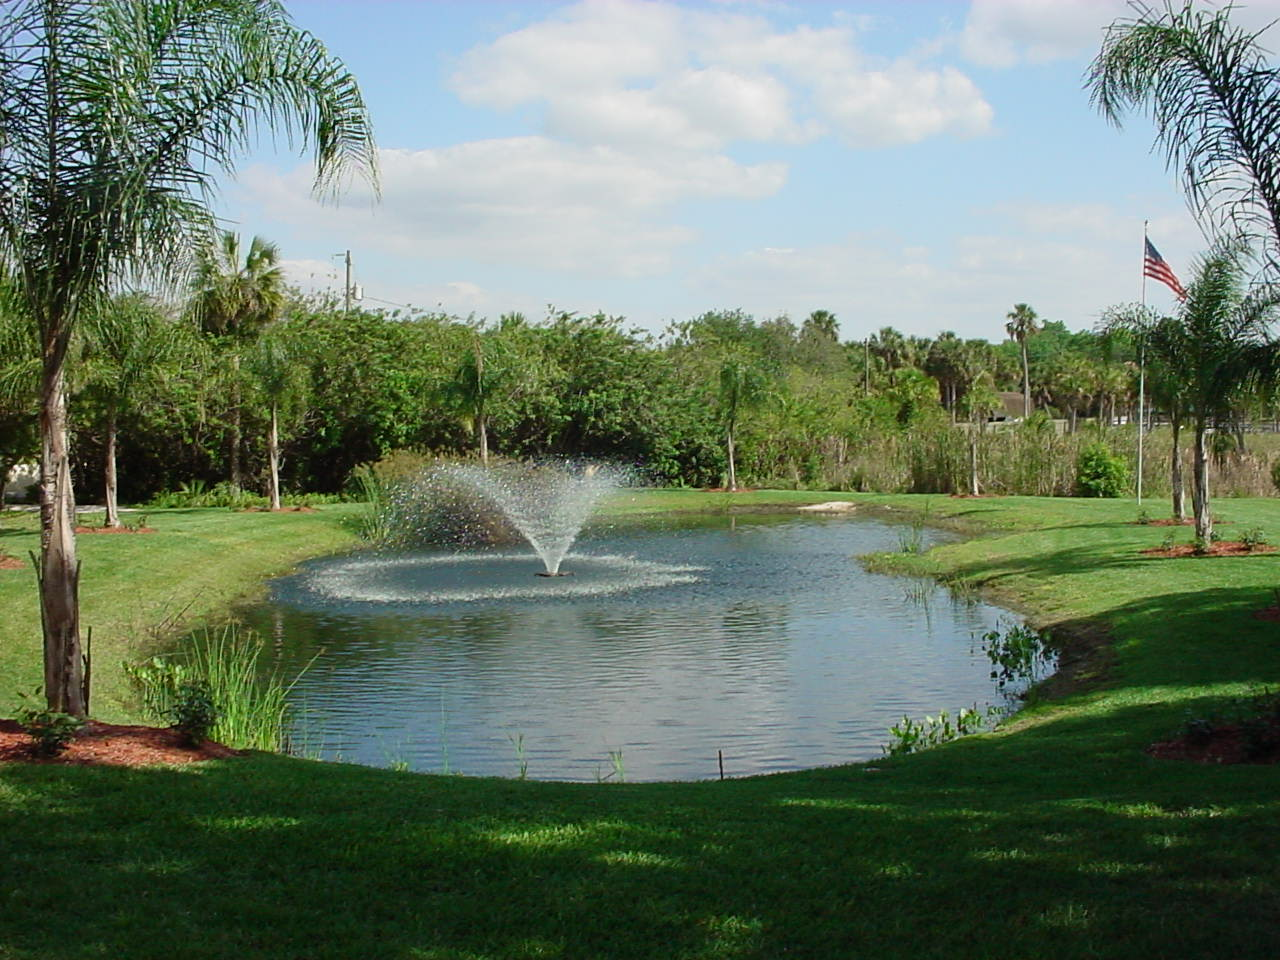 Sunllakeartificial for Artificial pond water